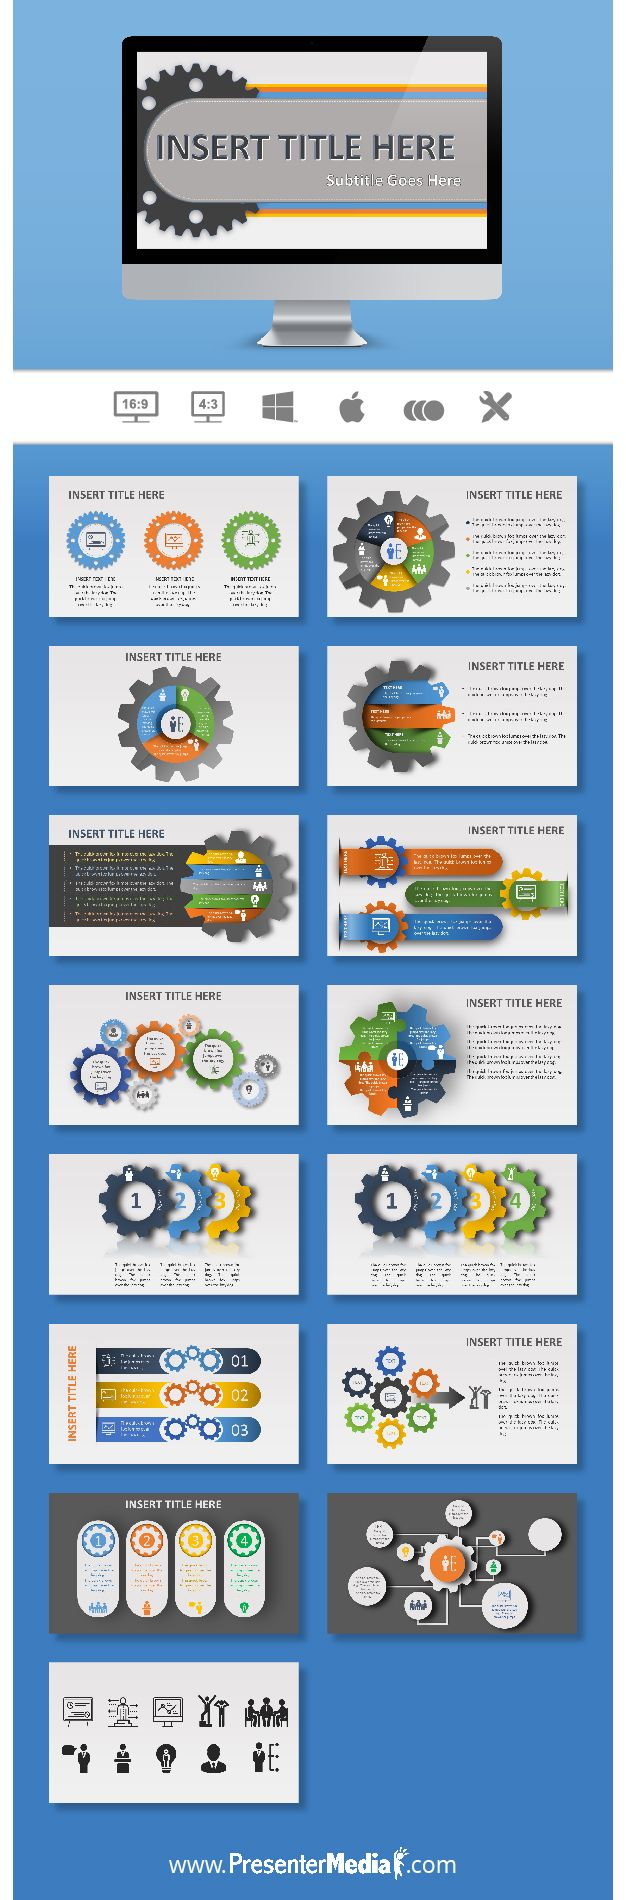 14 best powerpoint templates images on pinterest modelos get the gears spinning with this new presntation toolkit use it for your class or toneelgroepblik Images